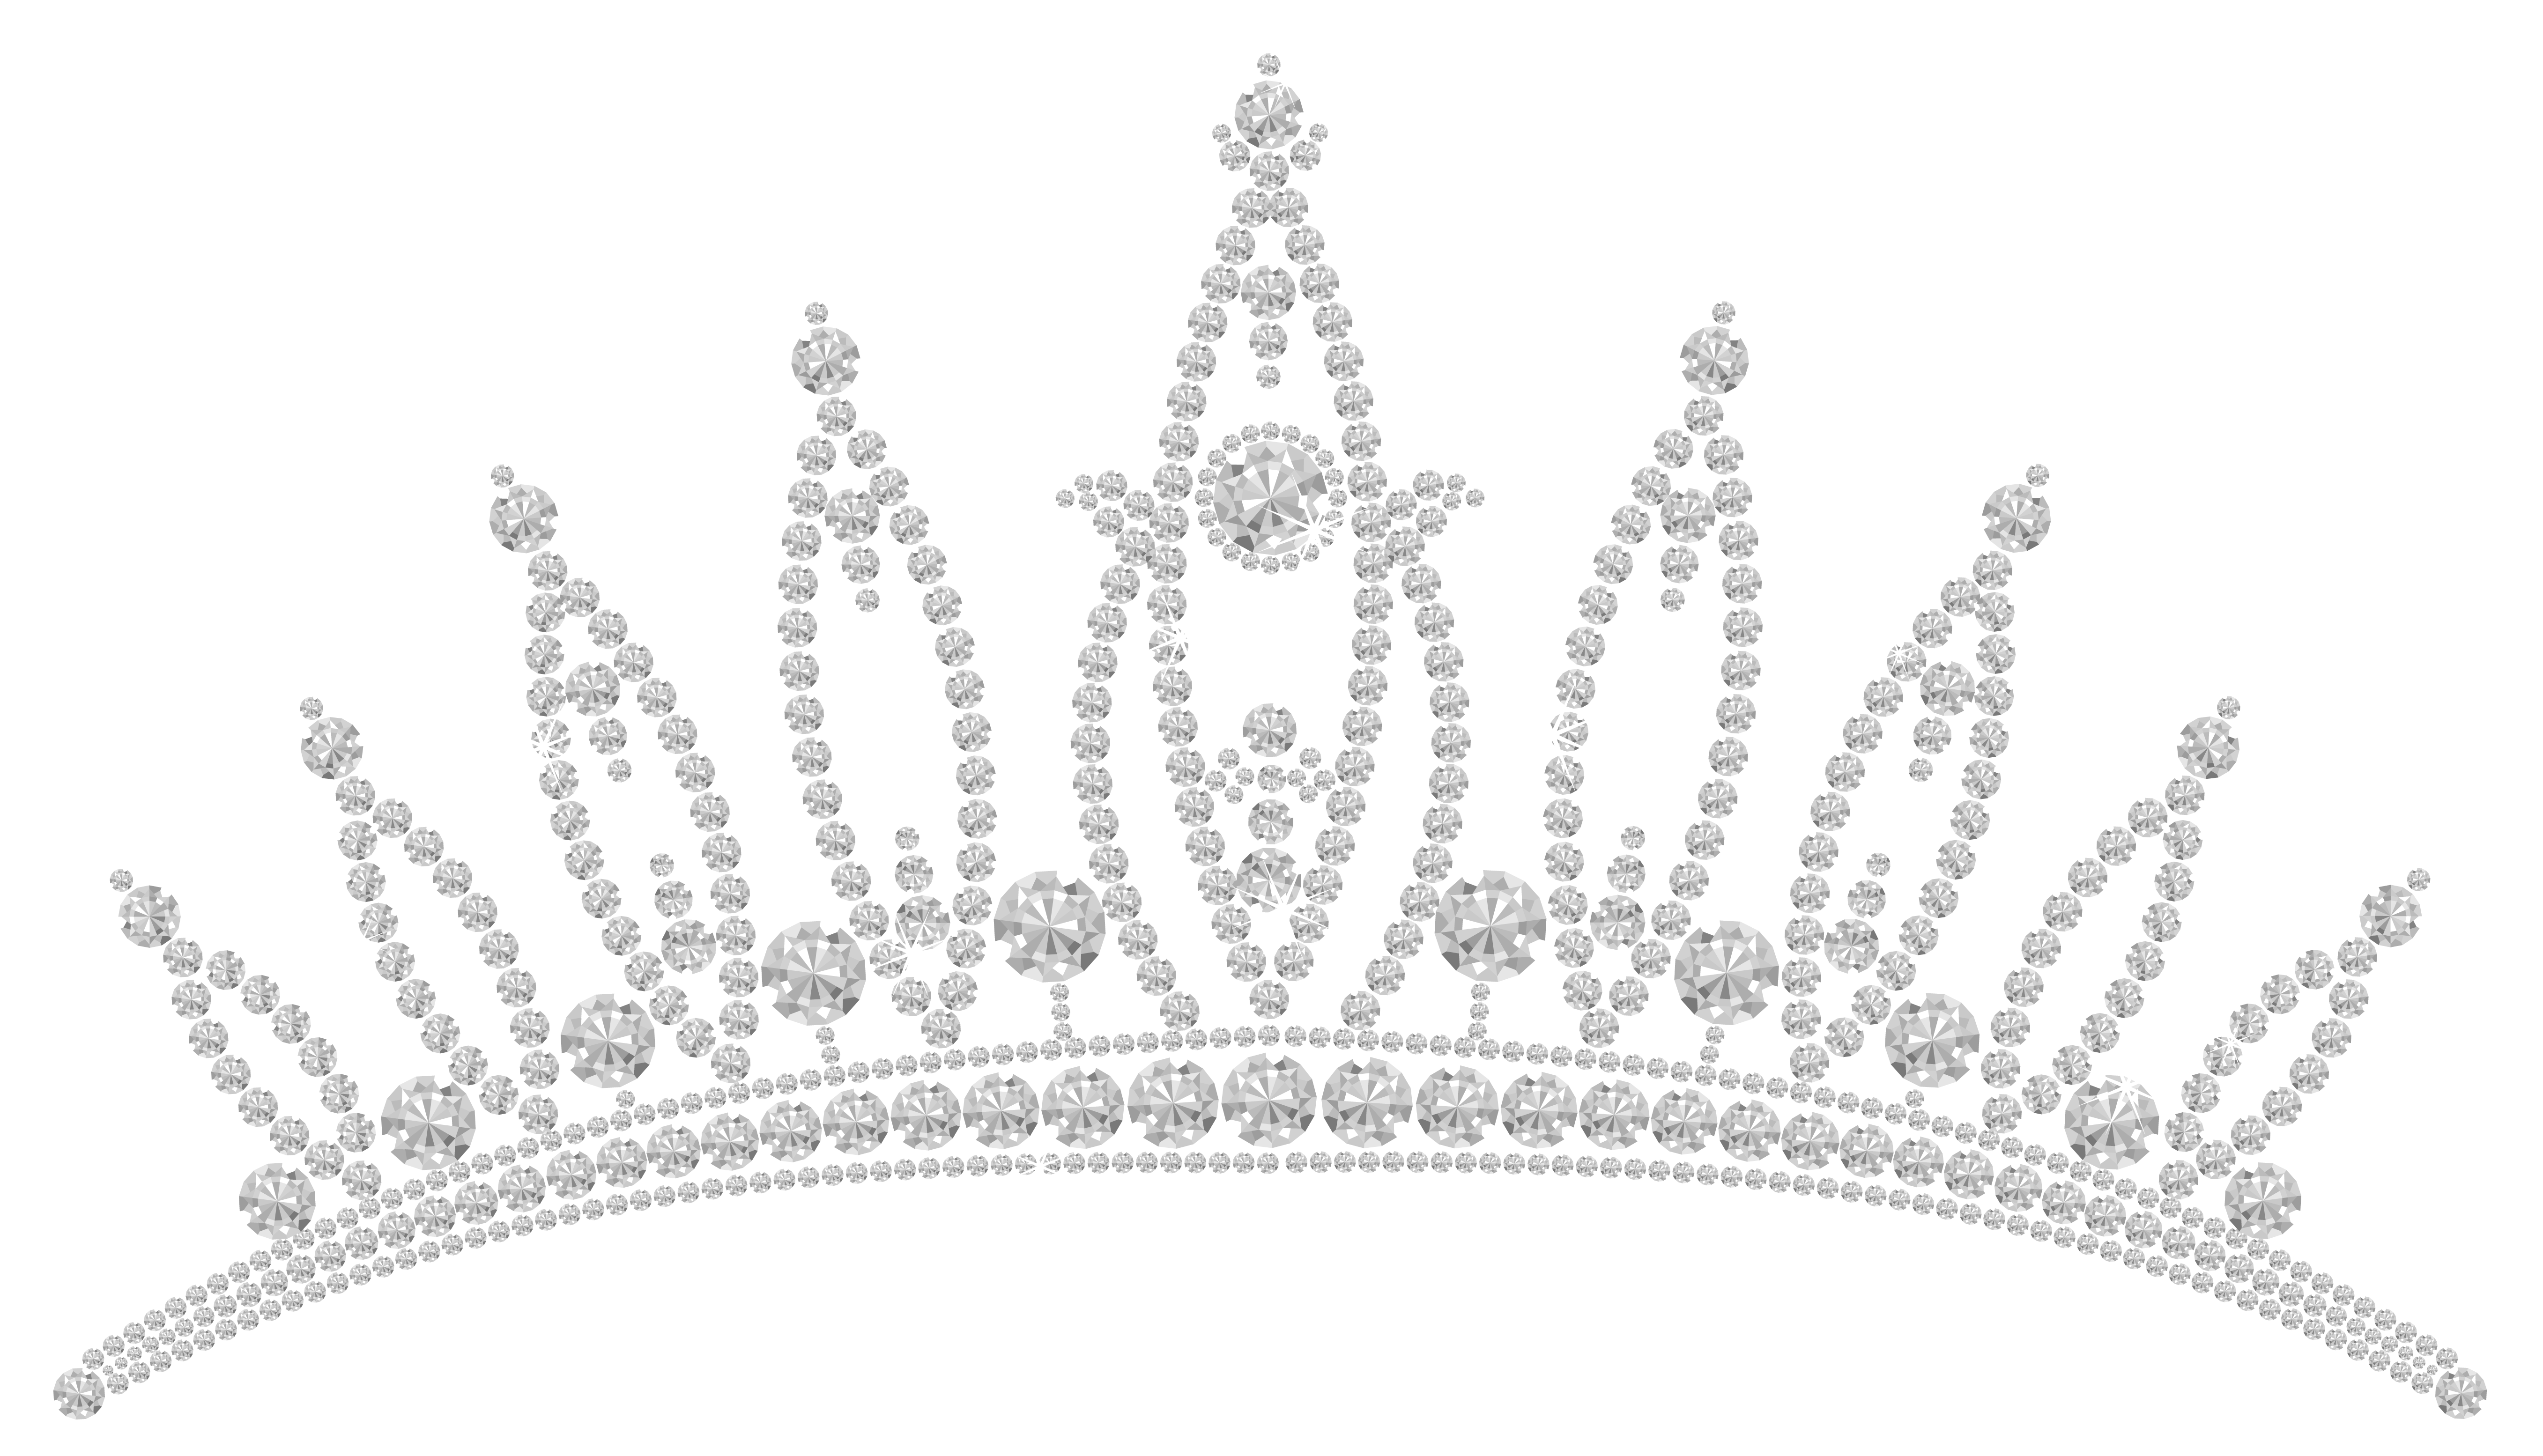 Diamond picture gallery yopriceville. Tiara clipart png jpg freeuse stock